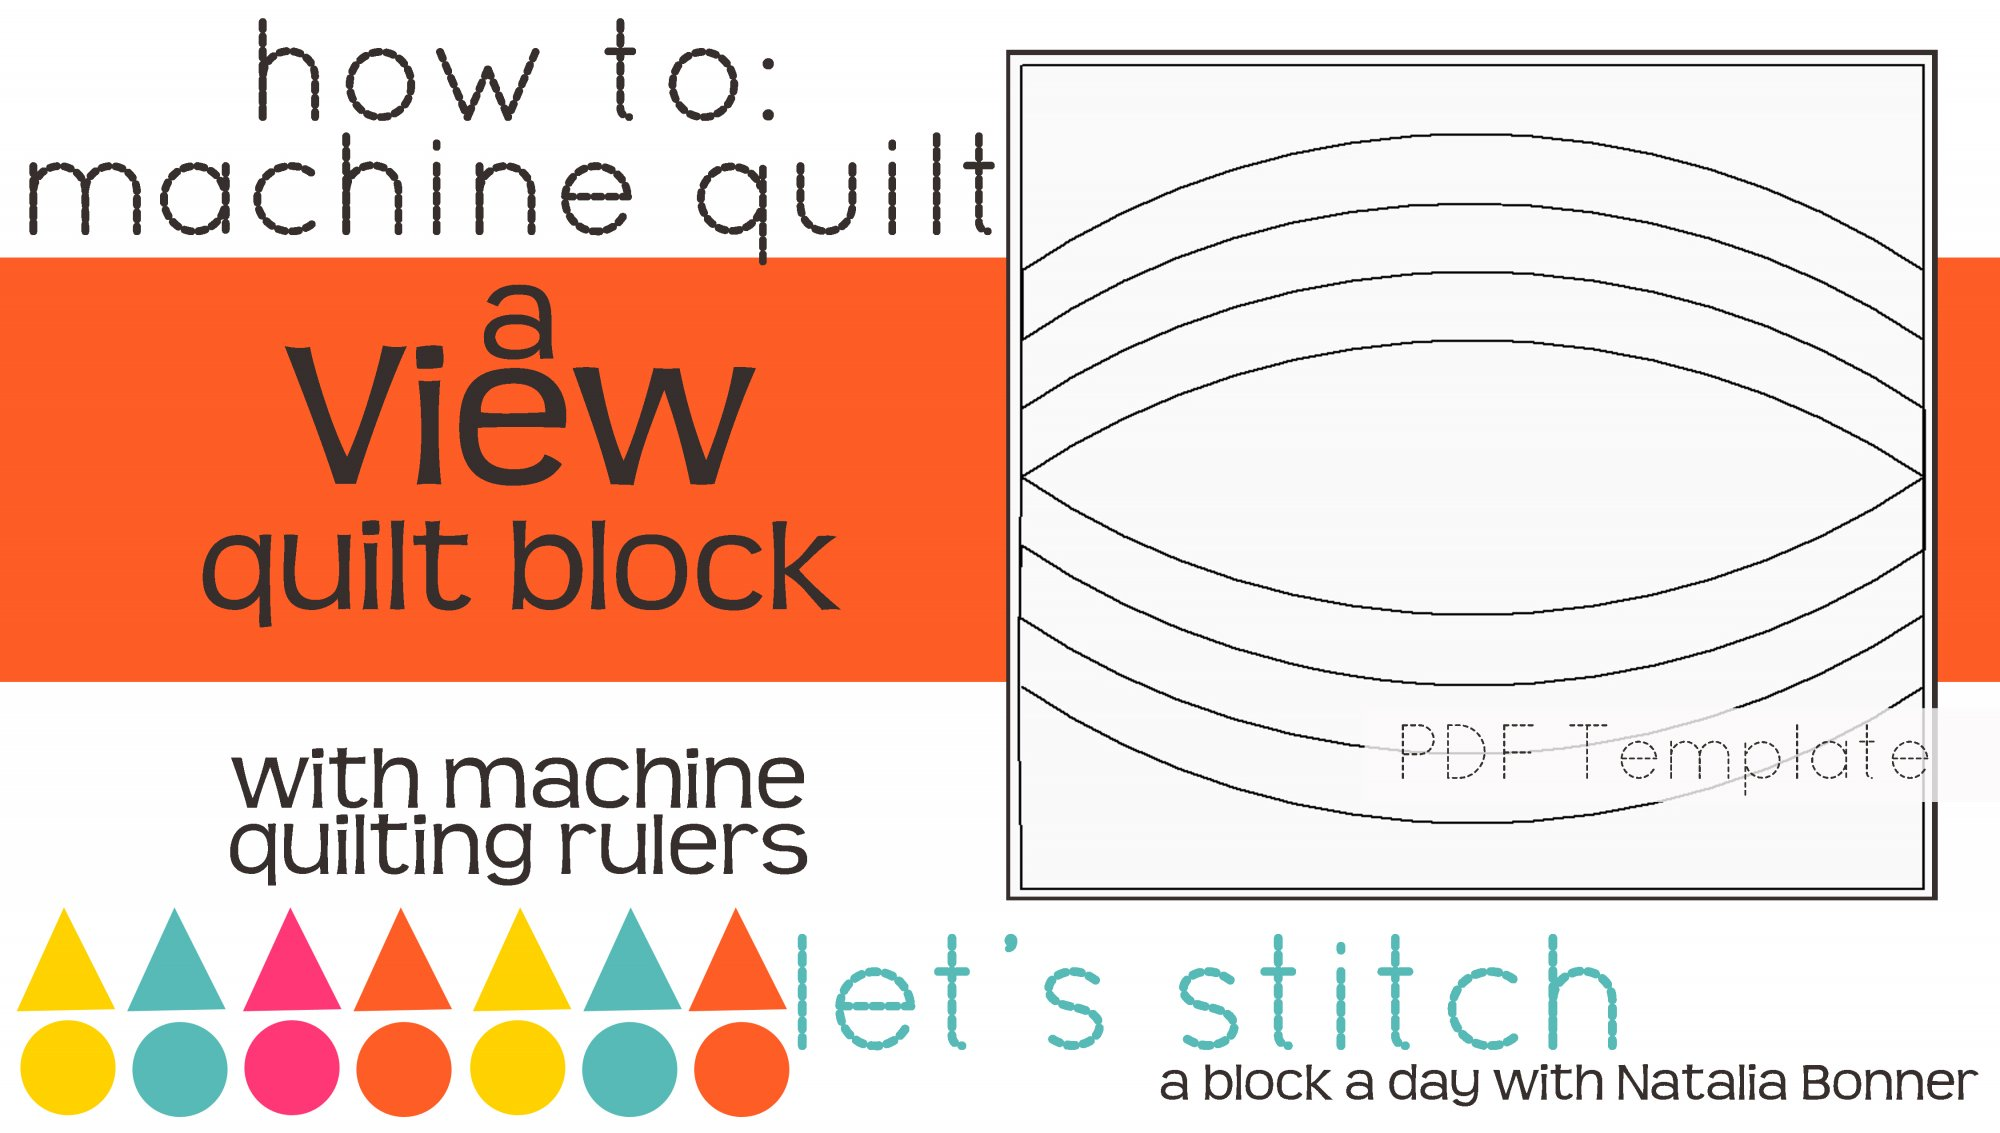 Let's Stitch - A Block a Day With Natalia Bonner - PDF - View